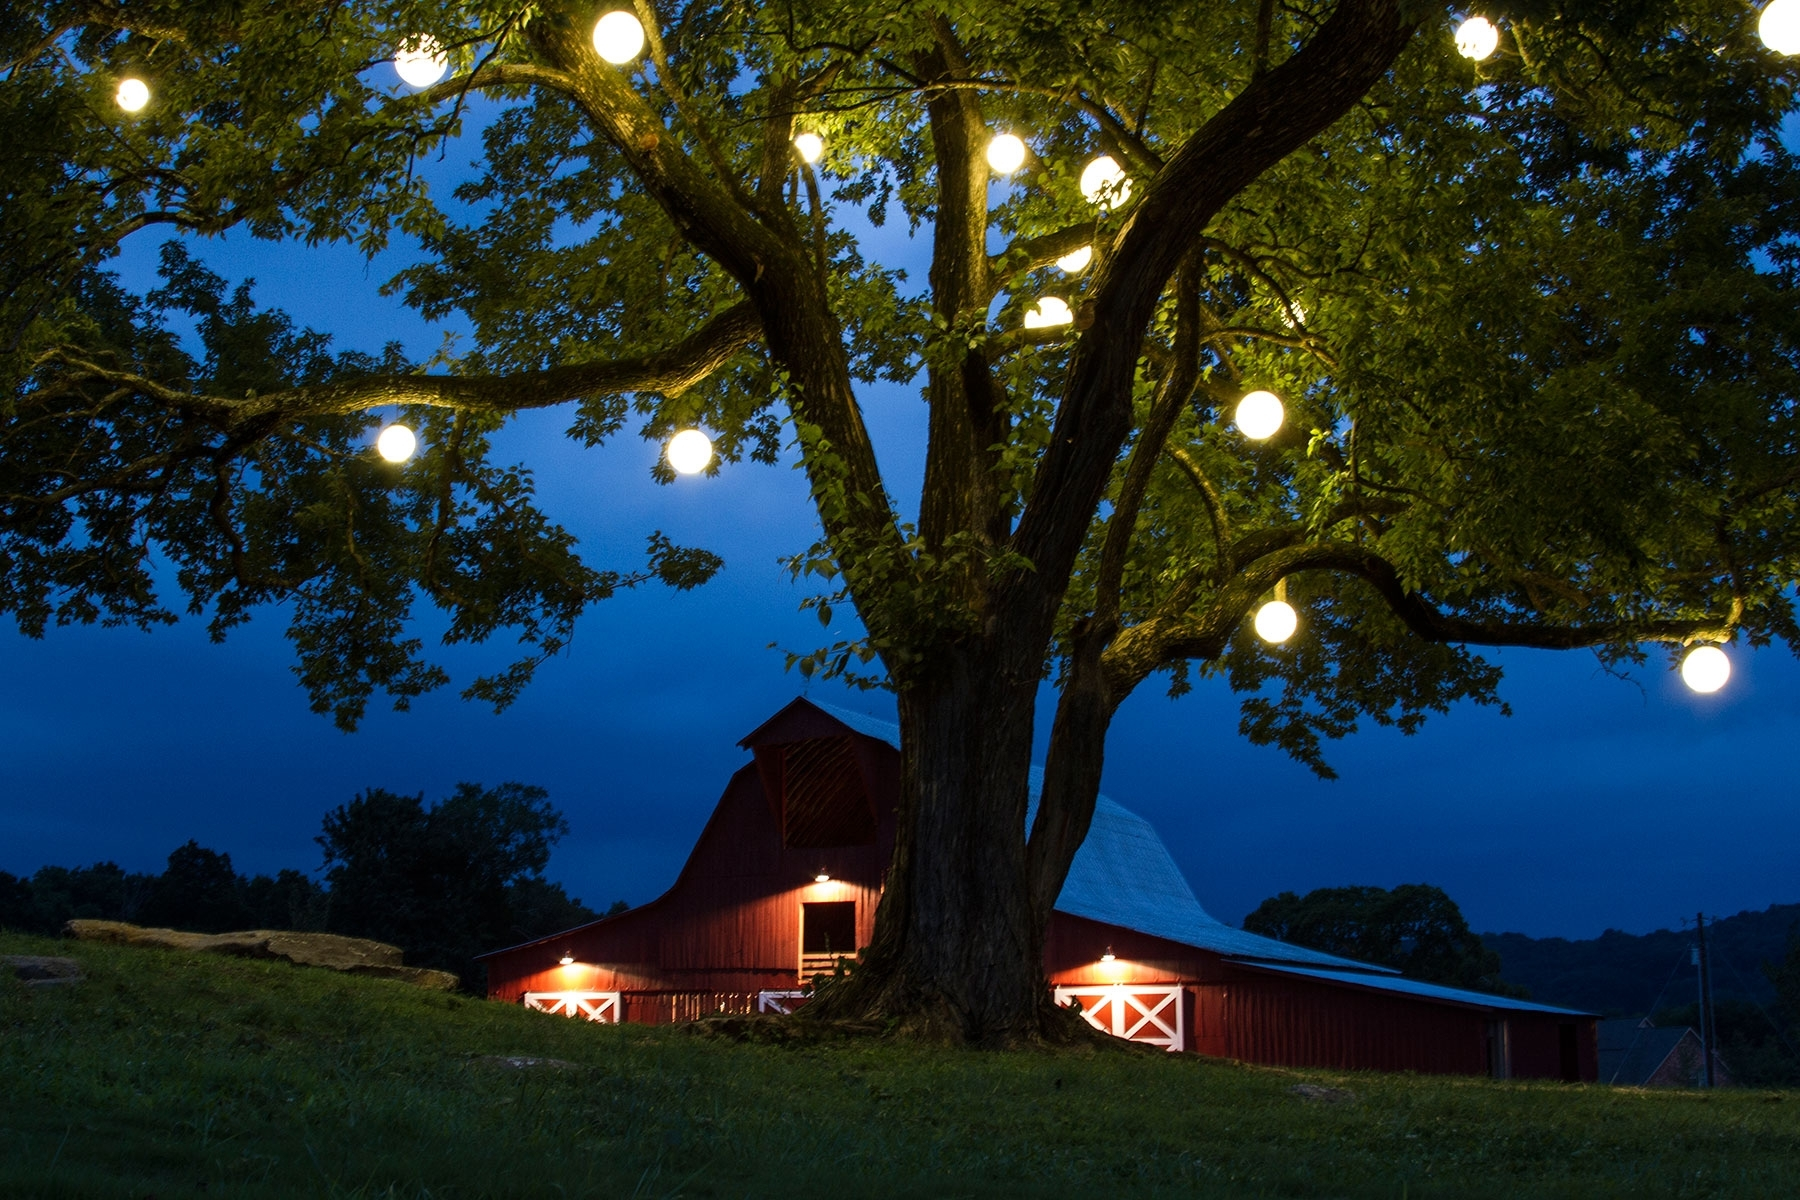 Diy : Outdoor Hanging Lights For Stylish Garden Ideas With Big Tree Inside Hanging Lights On An Outdoor Tree (#10 of 15)